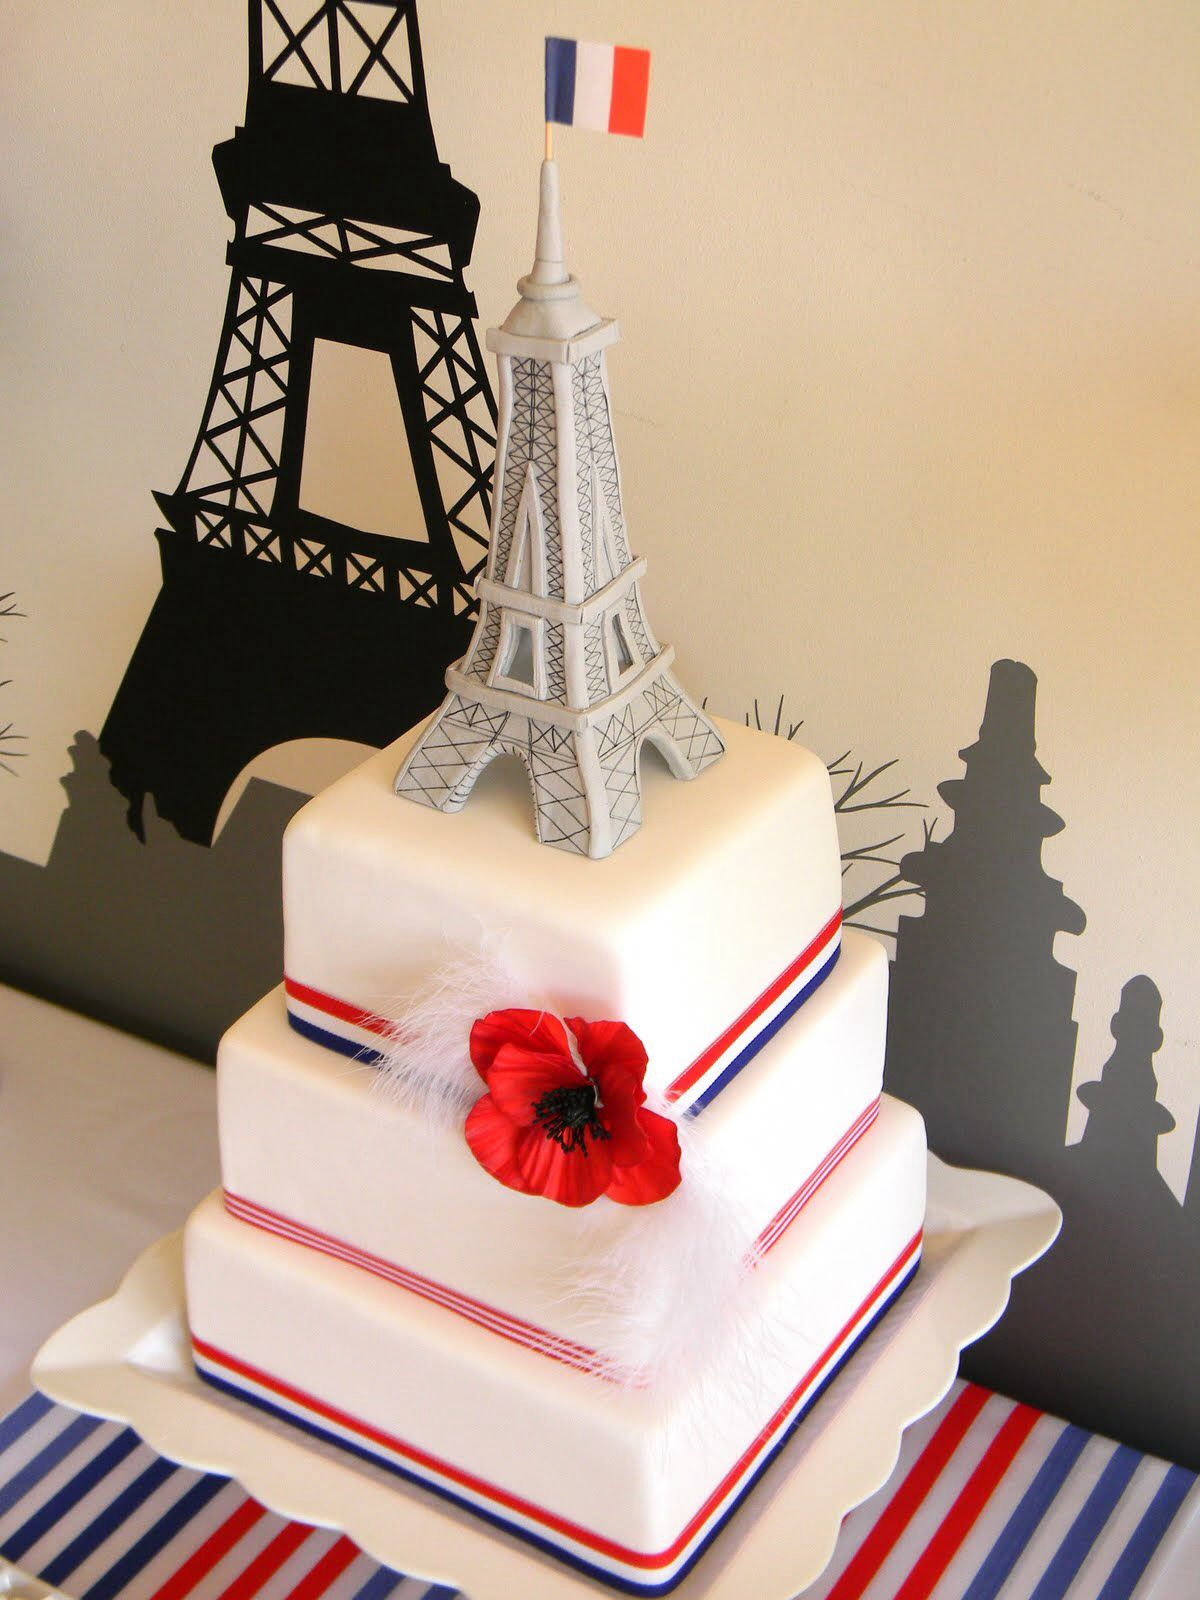 Image from http://www.littlebcakes.com/wp-content/uploads/2014/02/Eiffel-Tower-Cake.jpg.